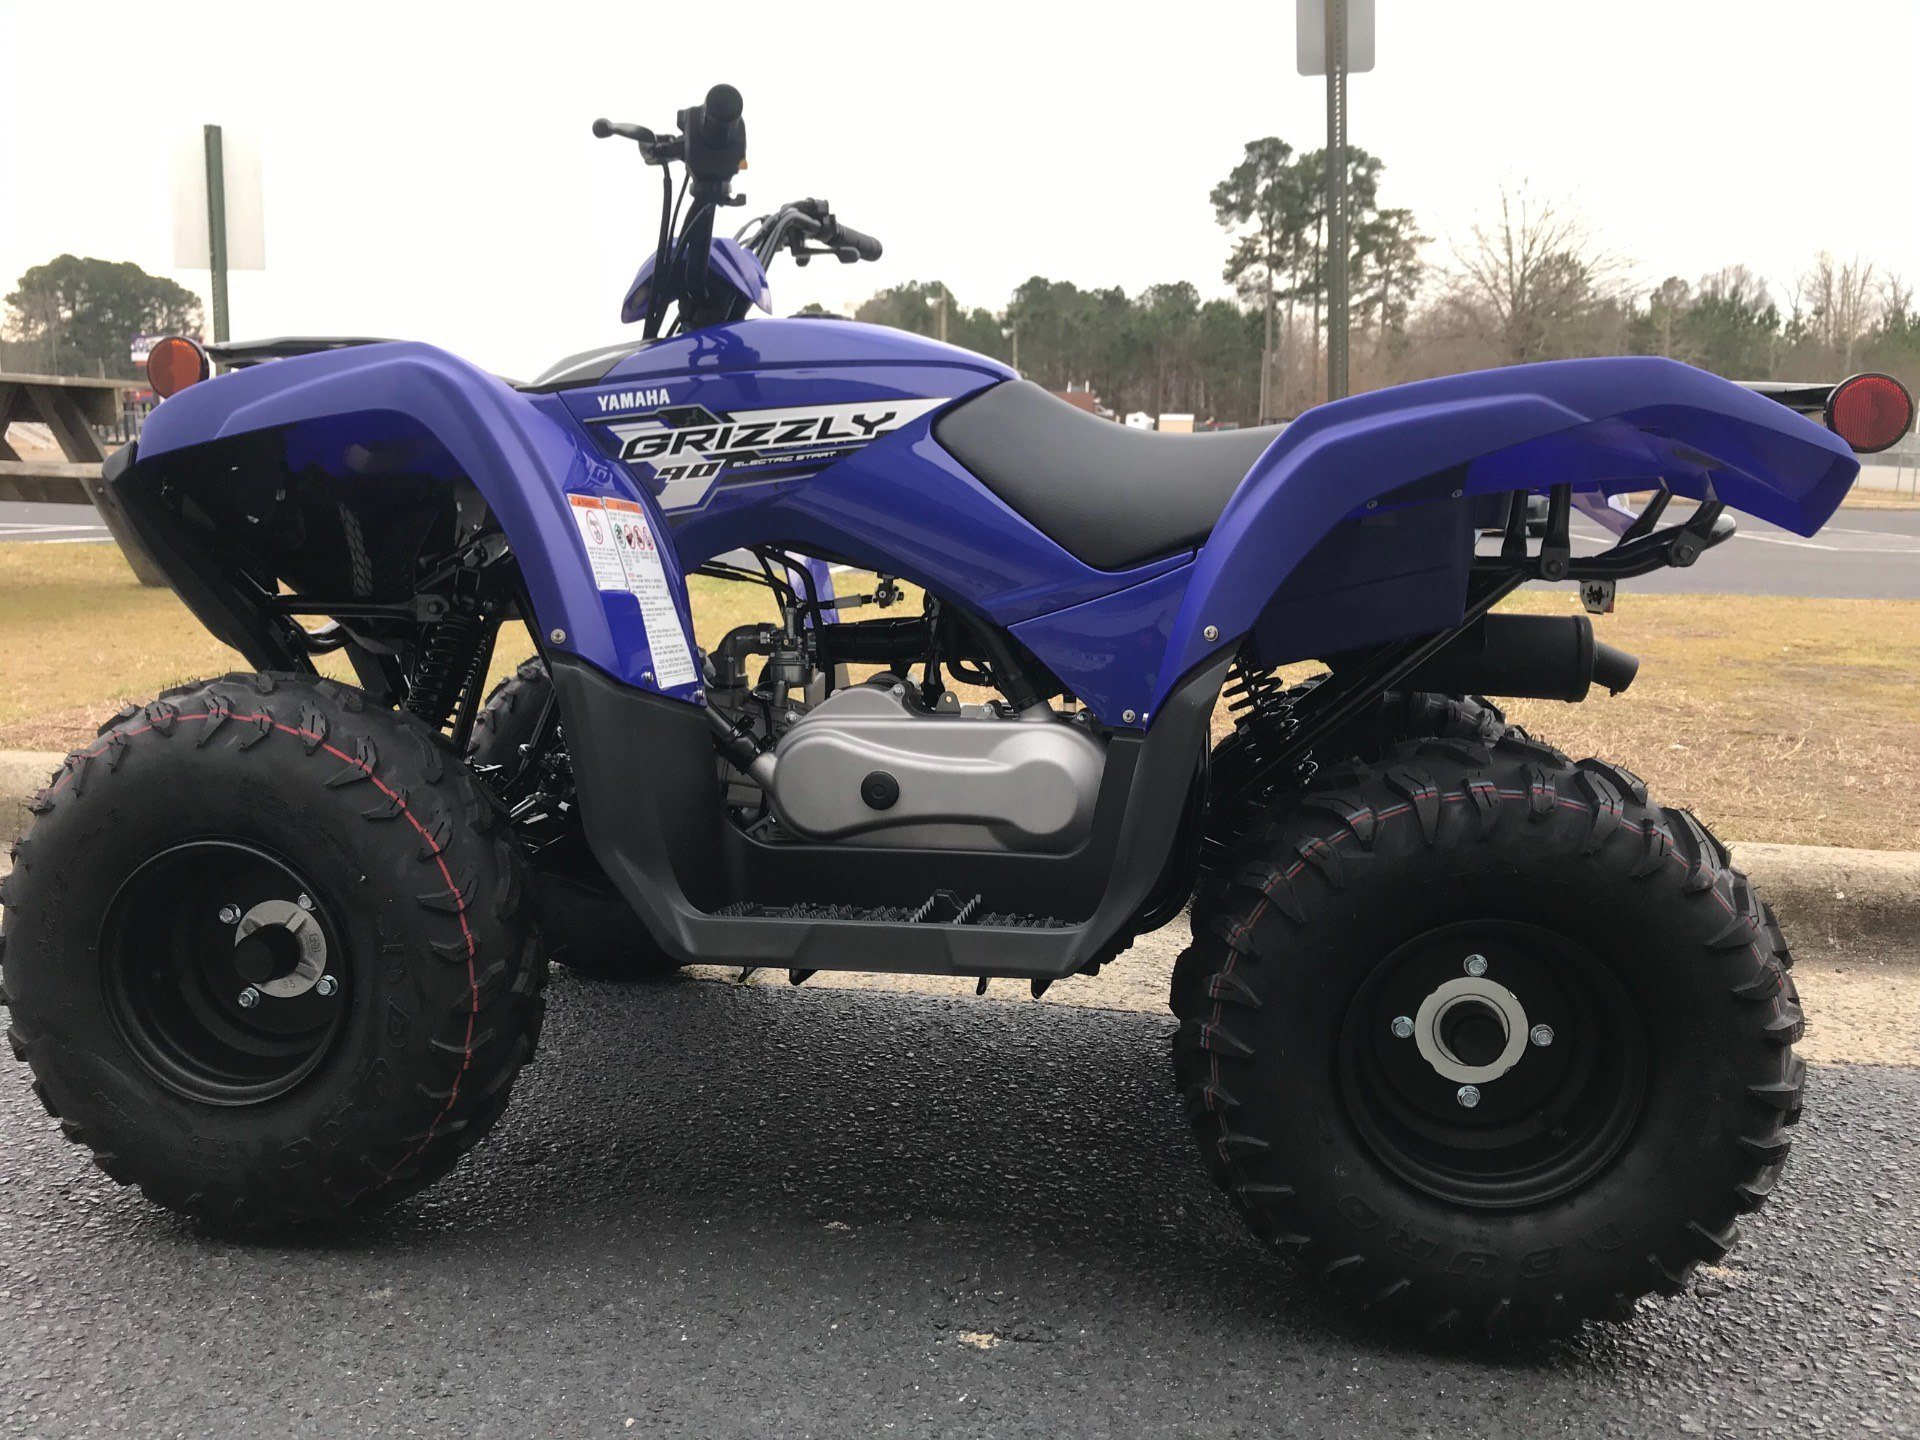 2019 Yamaha Grizzly 90 in Greenville, North Carolina - Photo 7